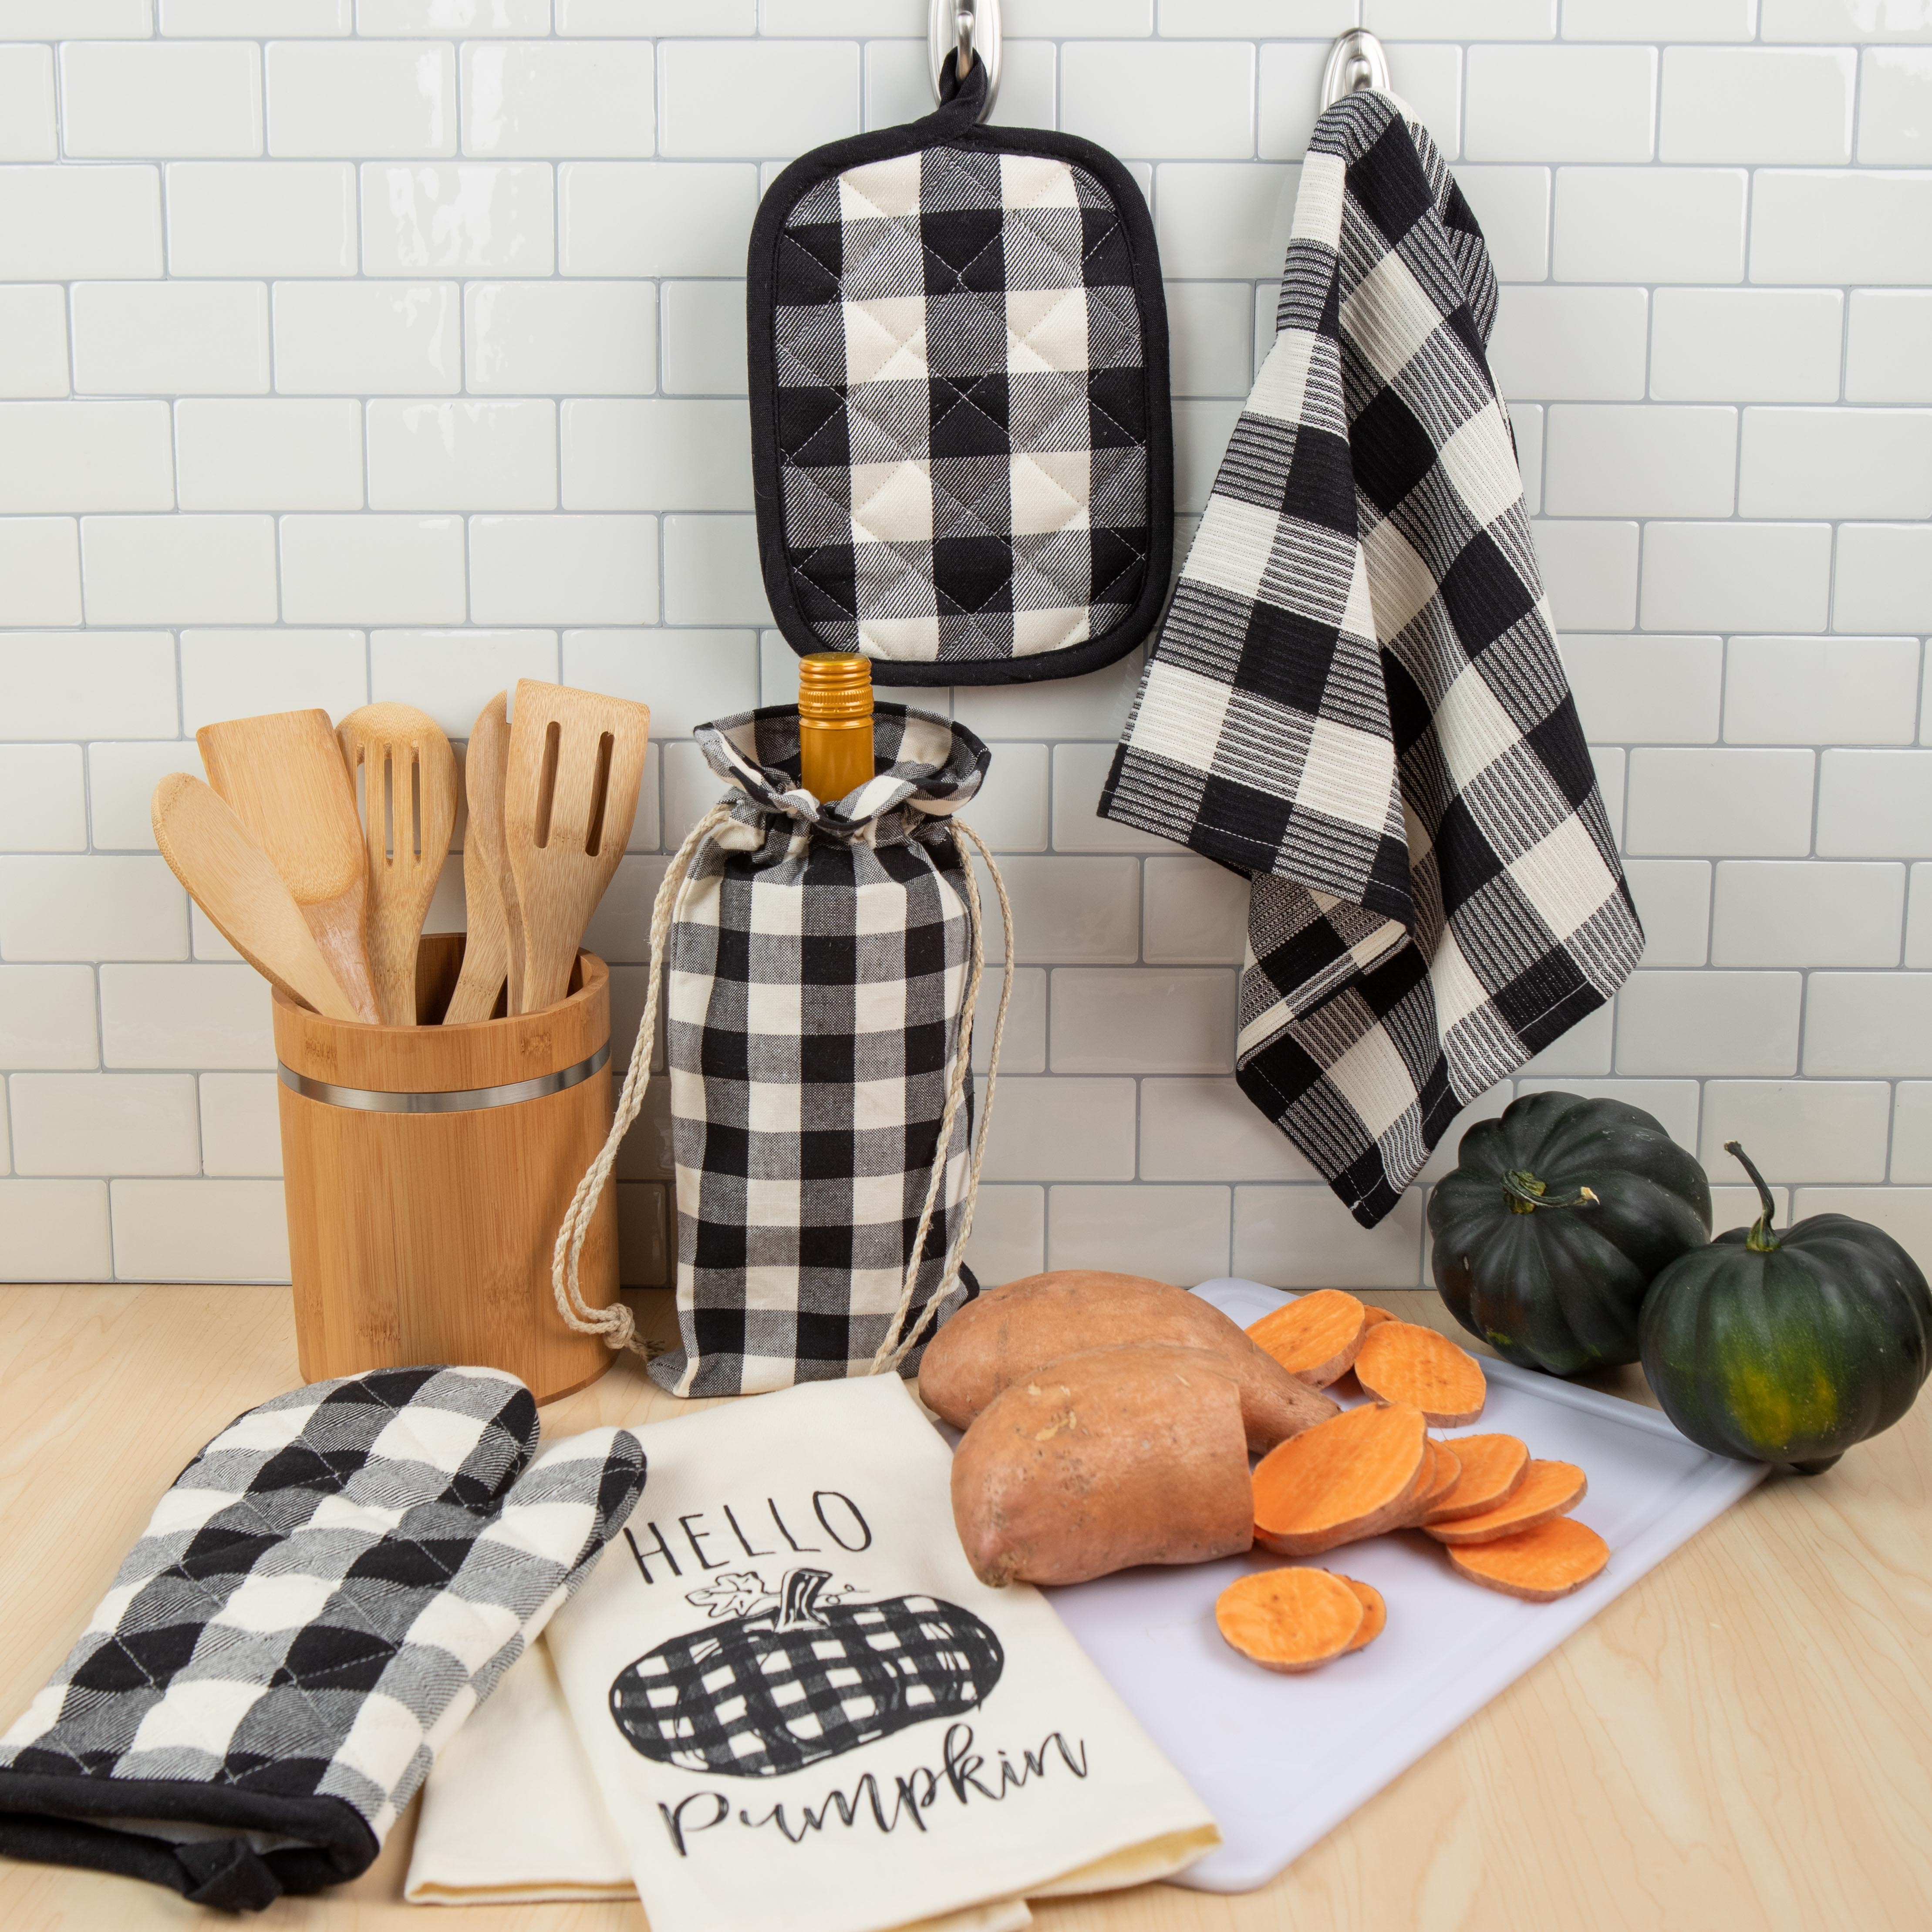 Combined Fall Kitchen Towels 5 Pieces Pot Holders and Towels Pumpkin Set Autumn Oven Mitt